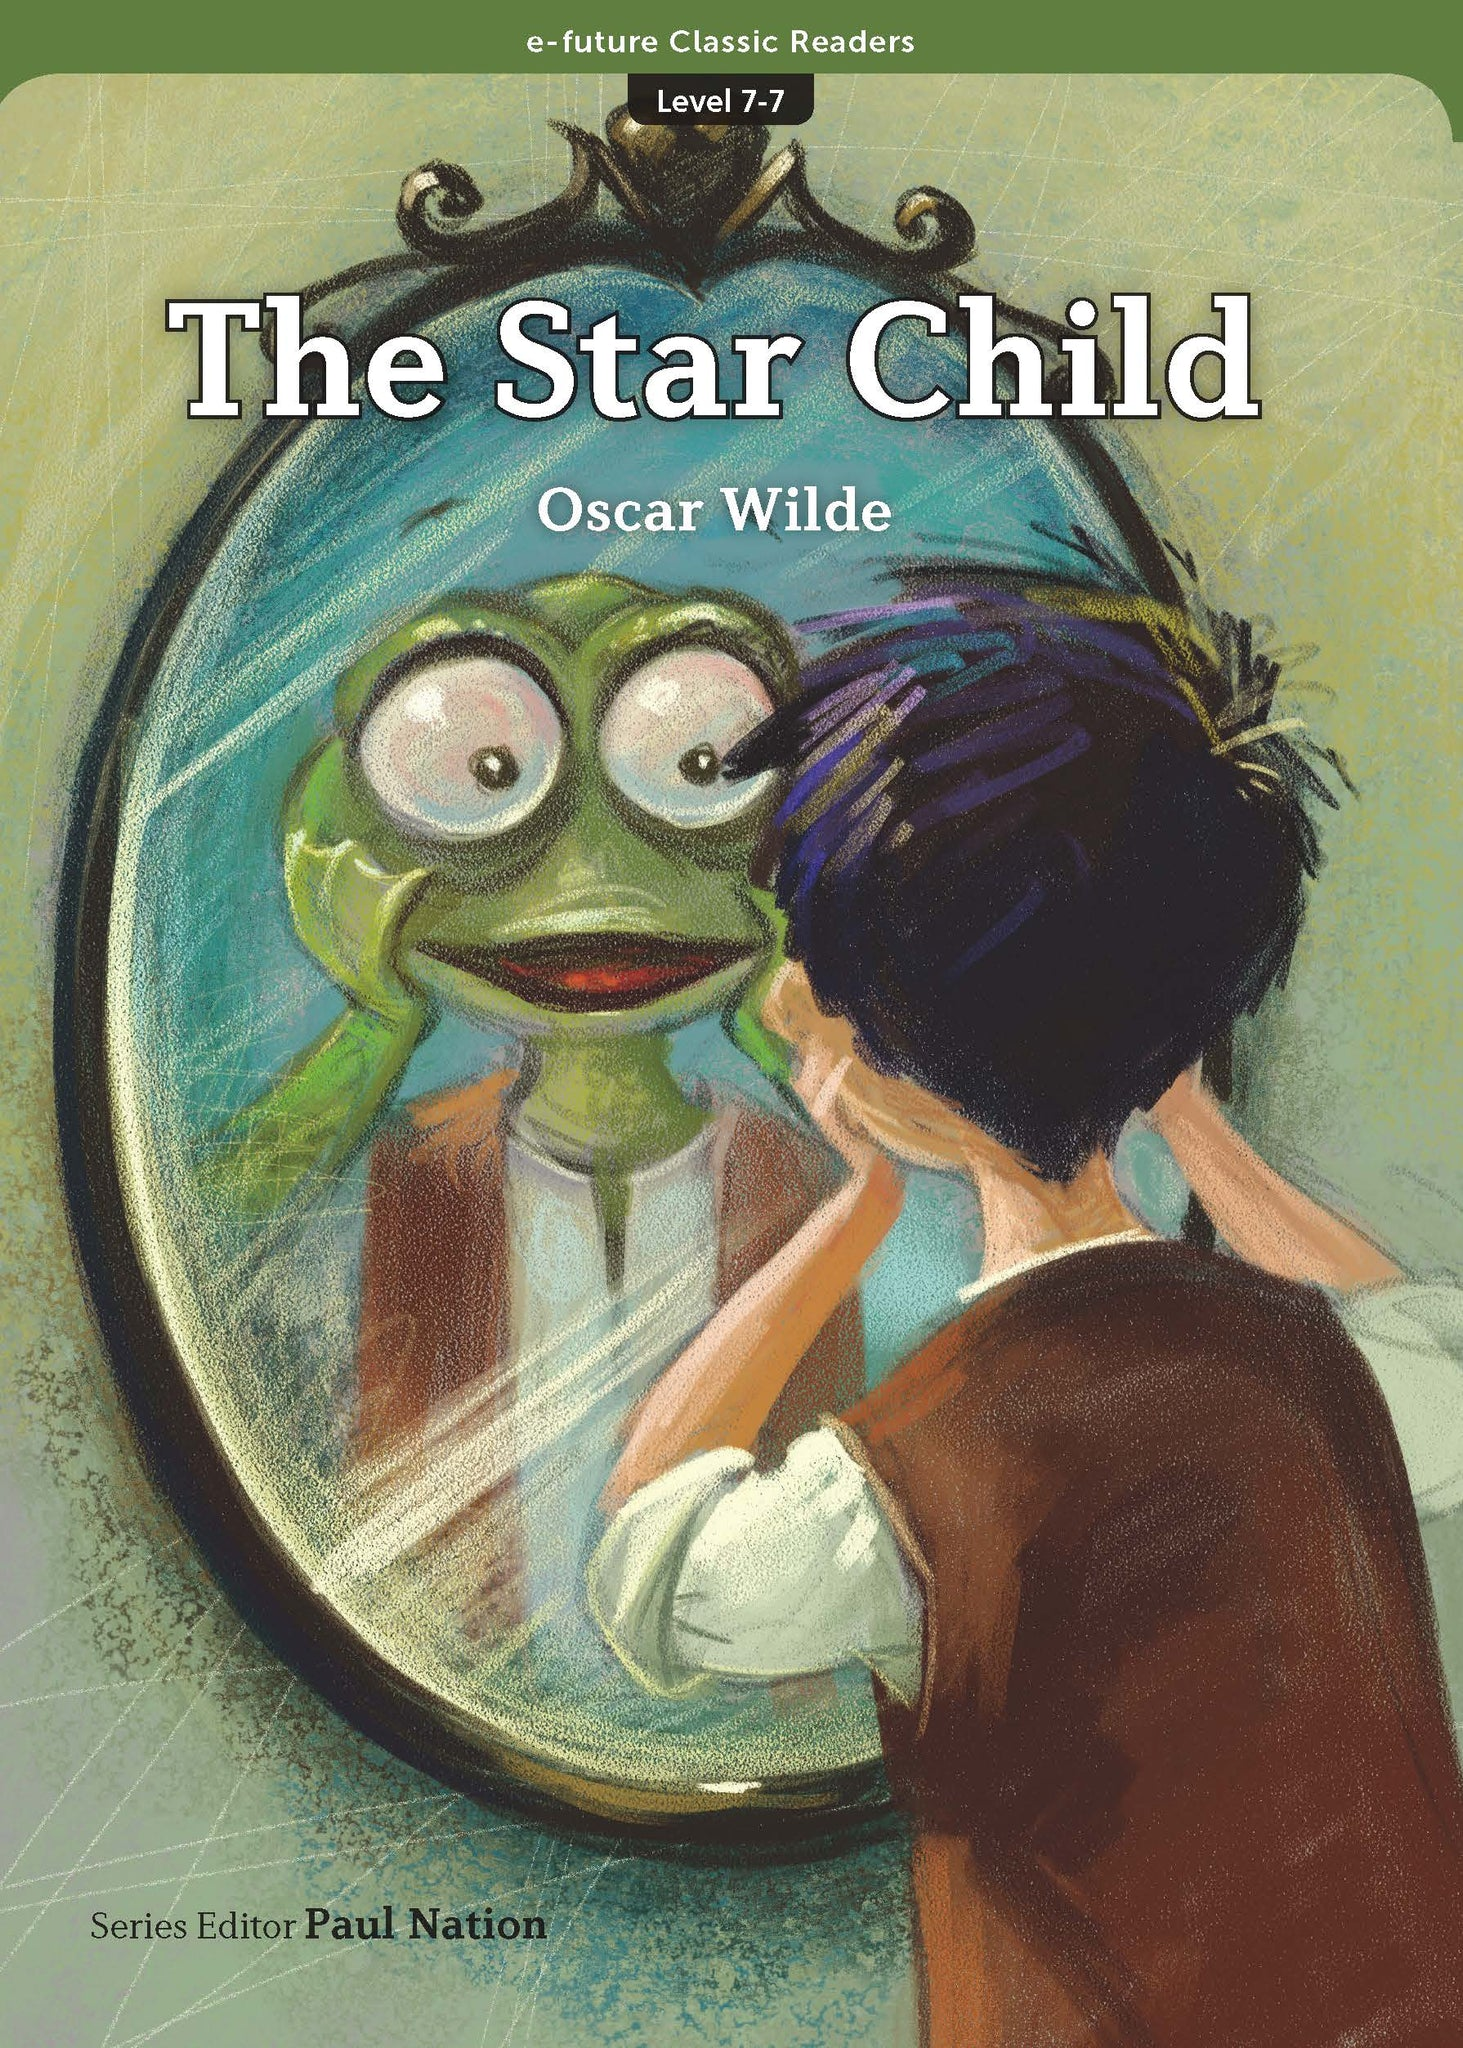 EF Classic Readers Level 7, Book 7: The Star Child